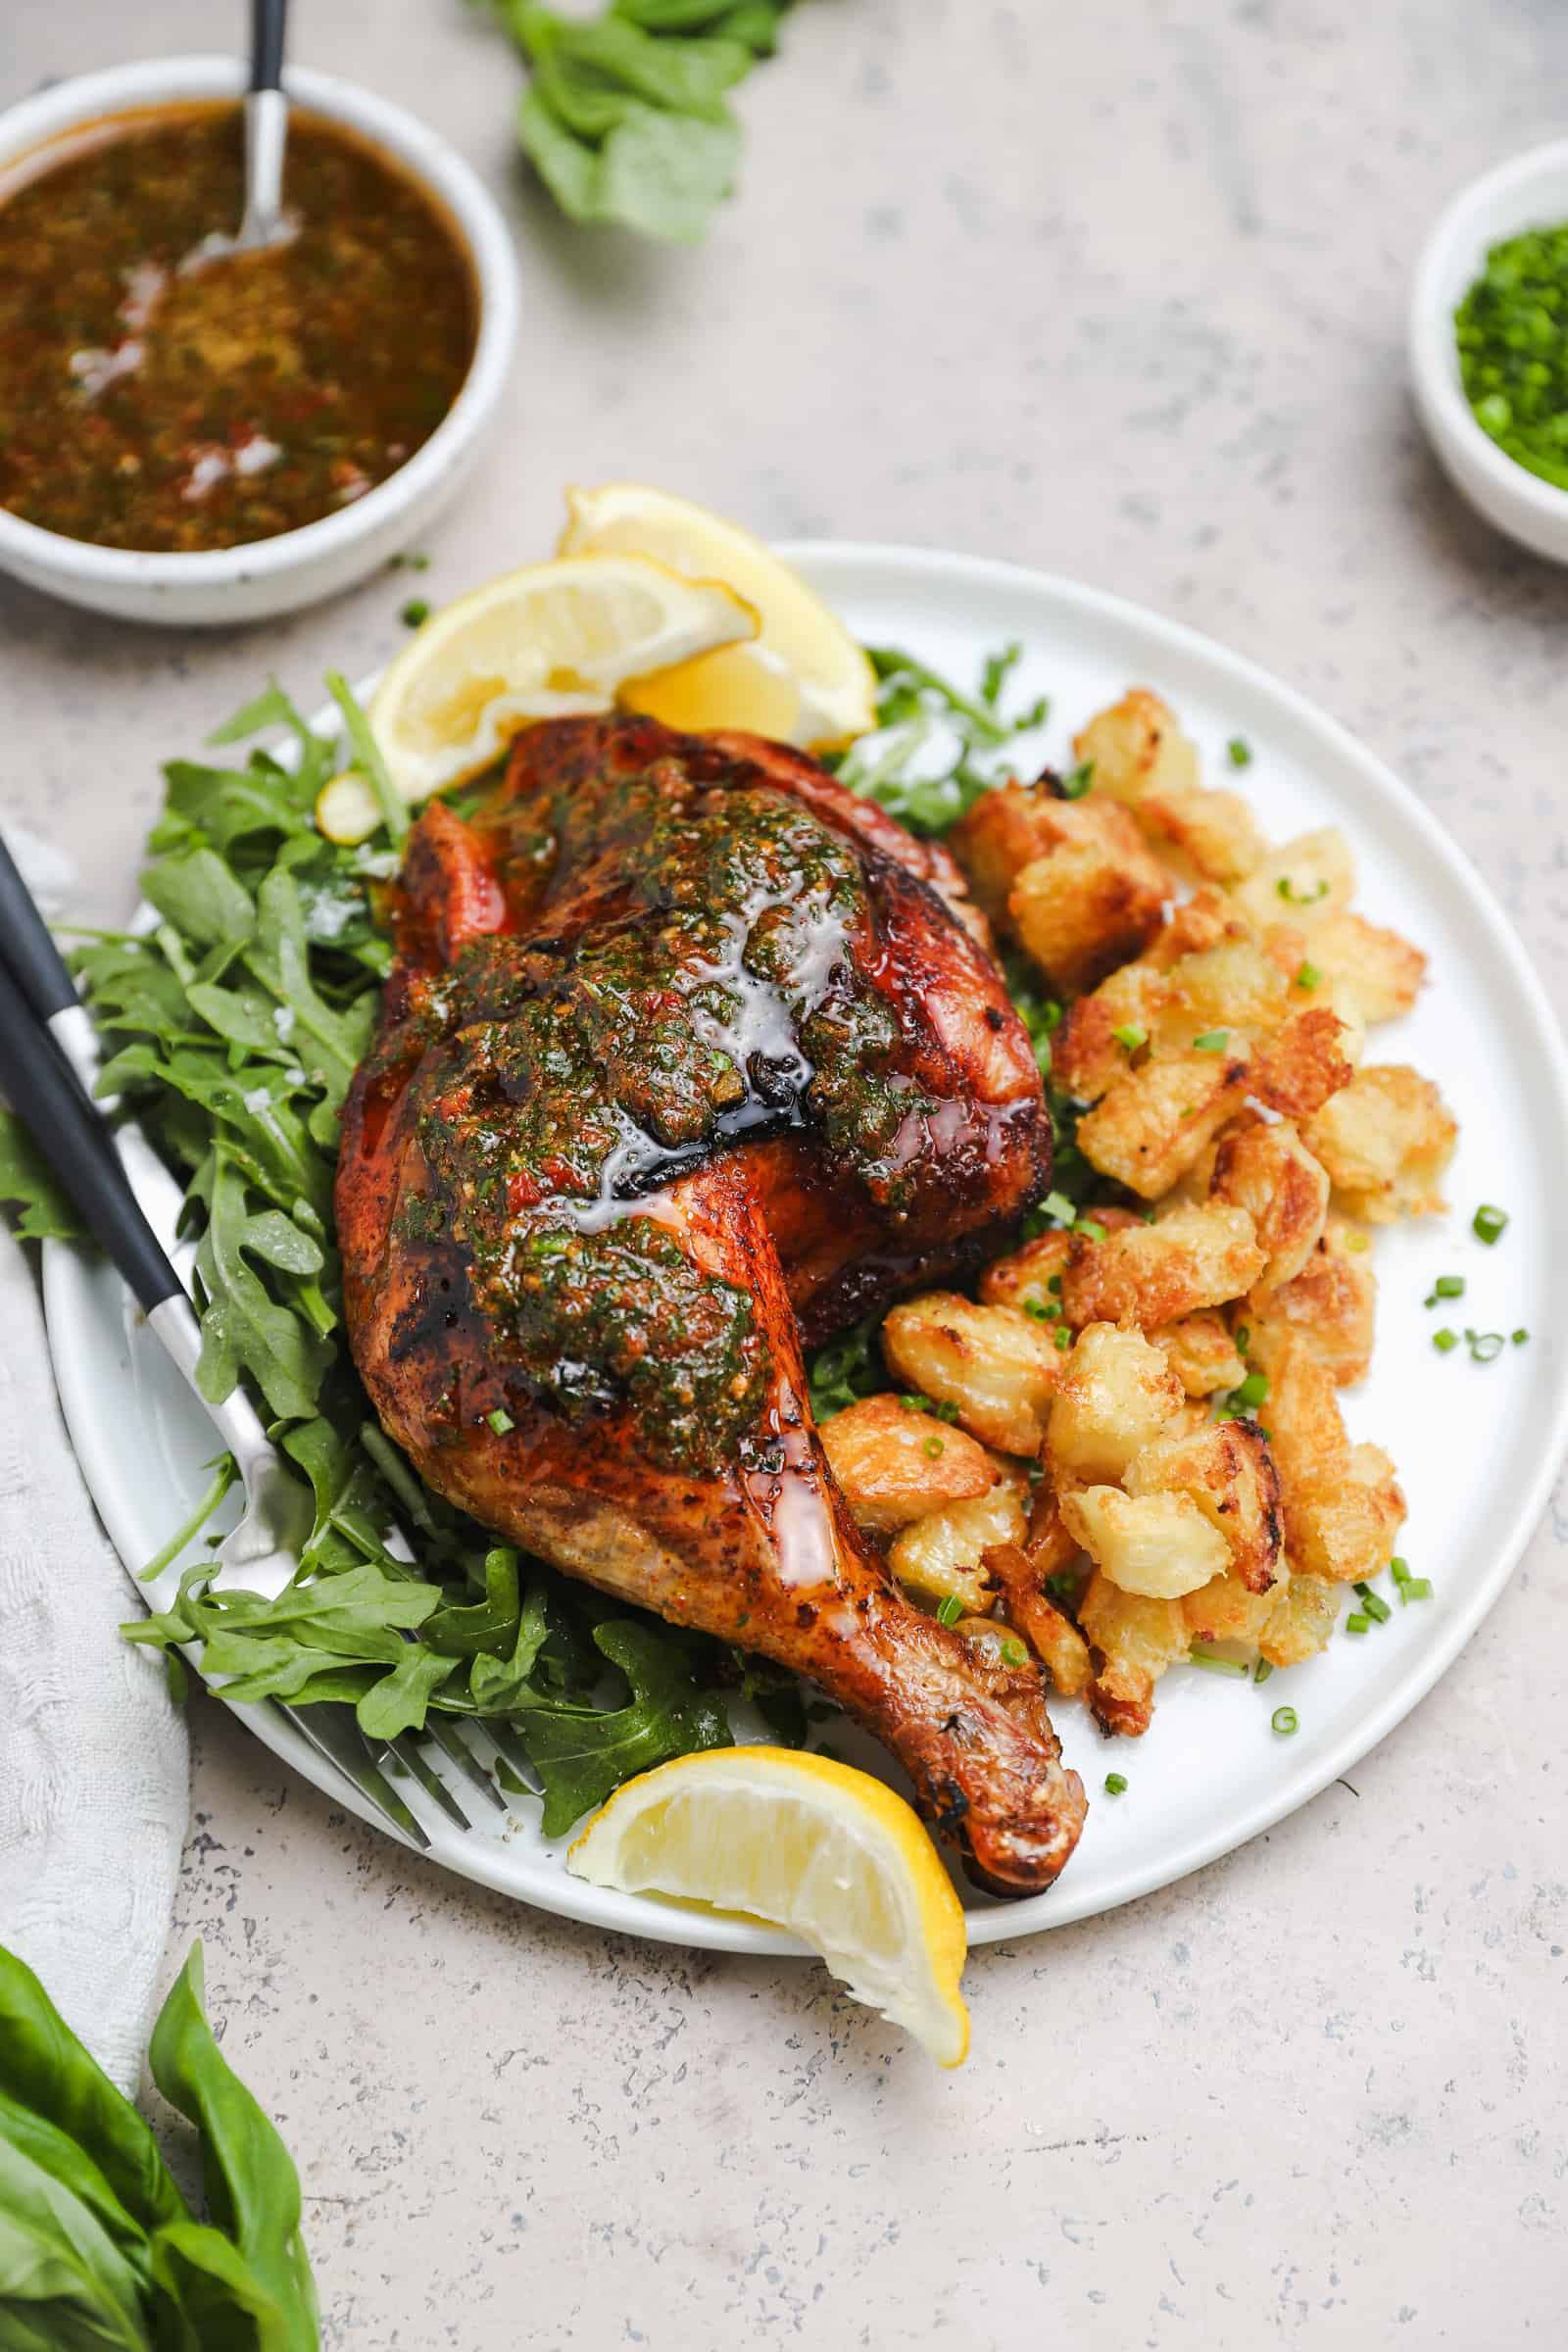 chicken thigh and leg that is topped with sun dried tomato herb oil, served on a white plate with arugula, crispy potatoes, and lemon wedges